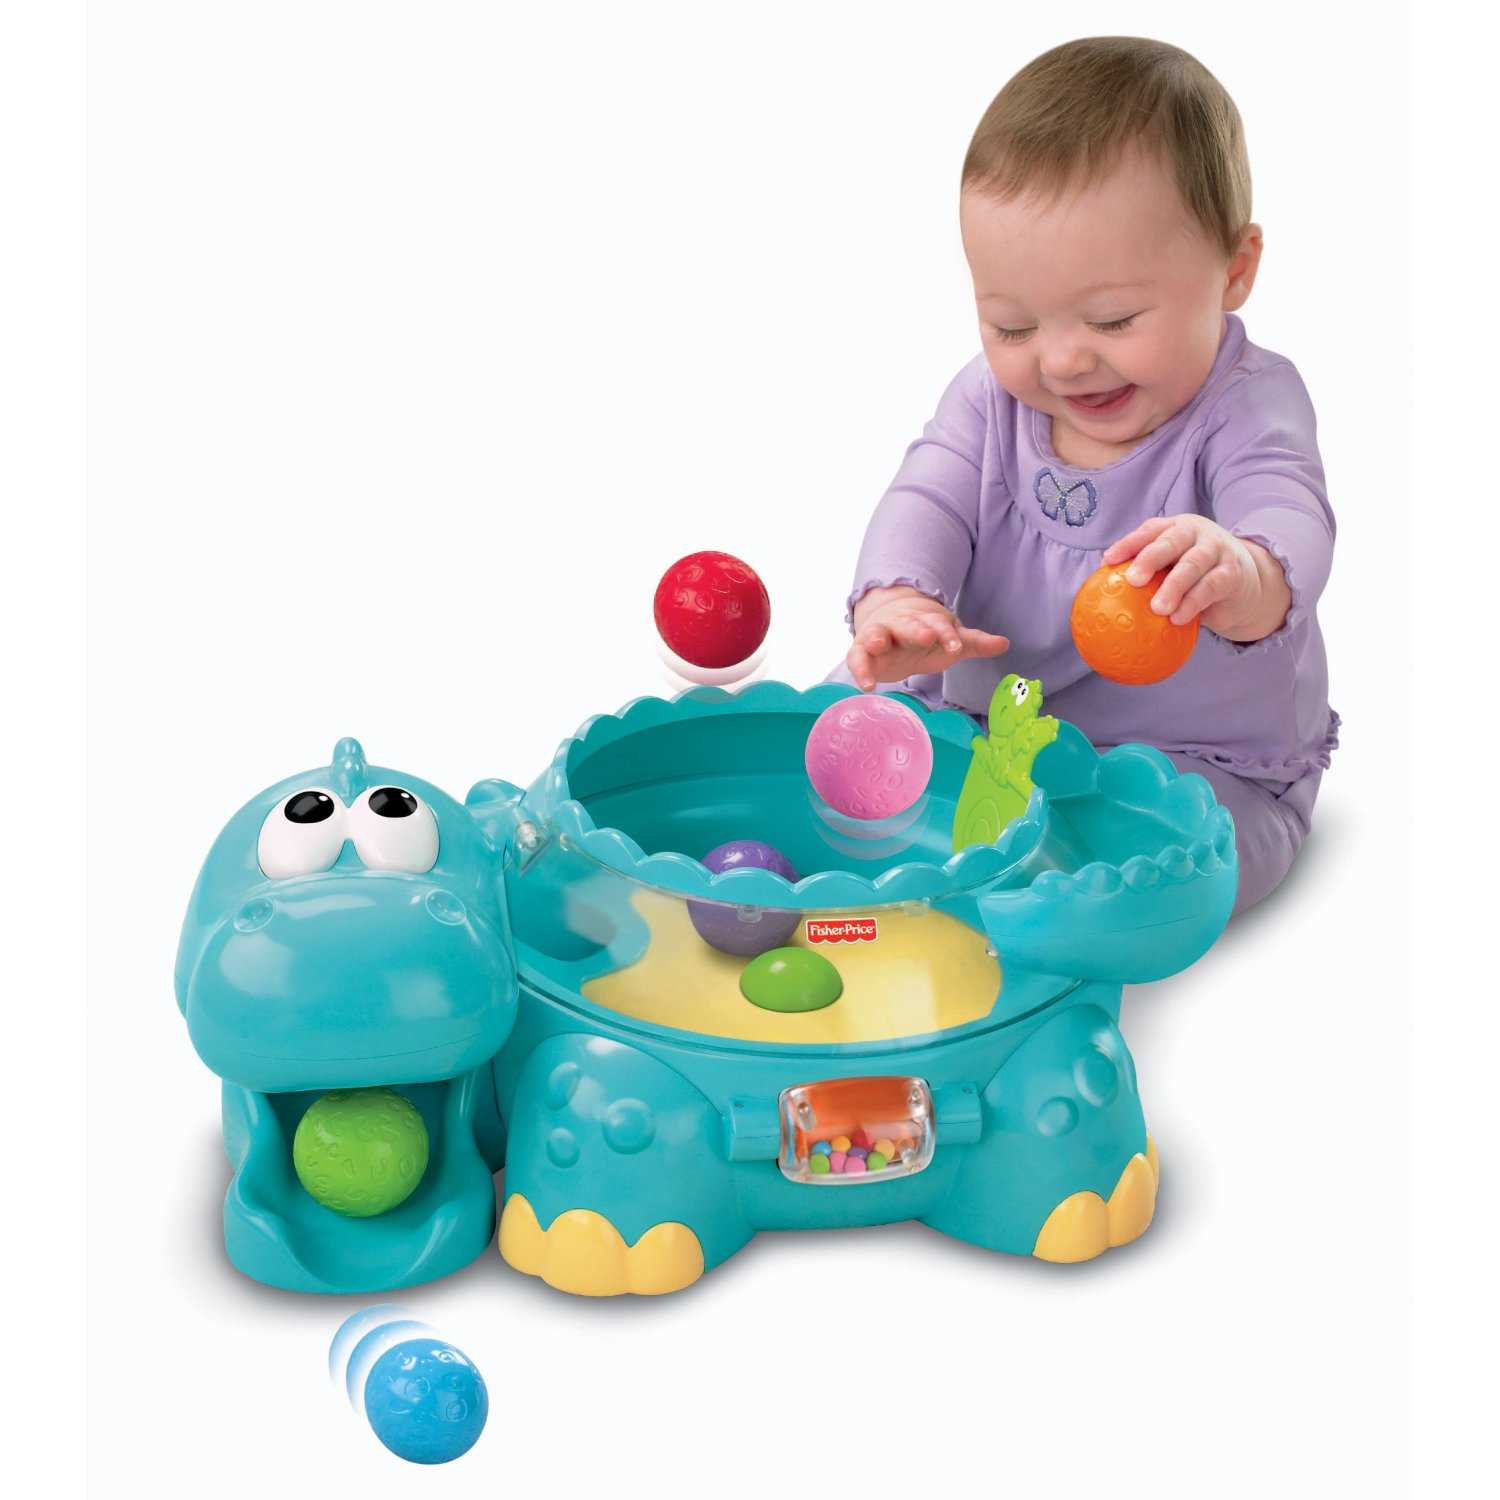 Best Musical Toys For Babies : Fisher price poppity pop musical dino best toy for babies